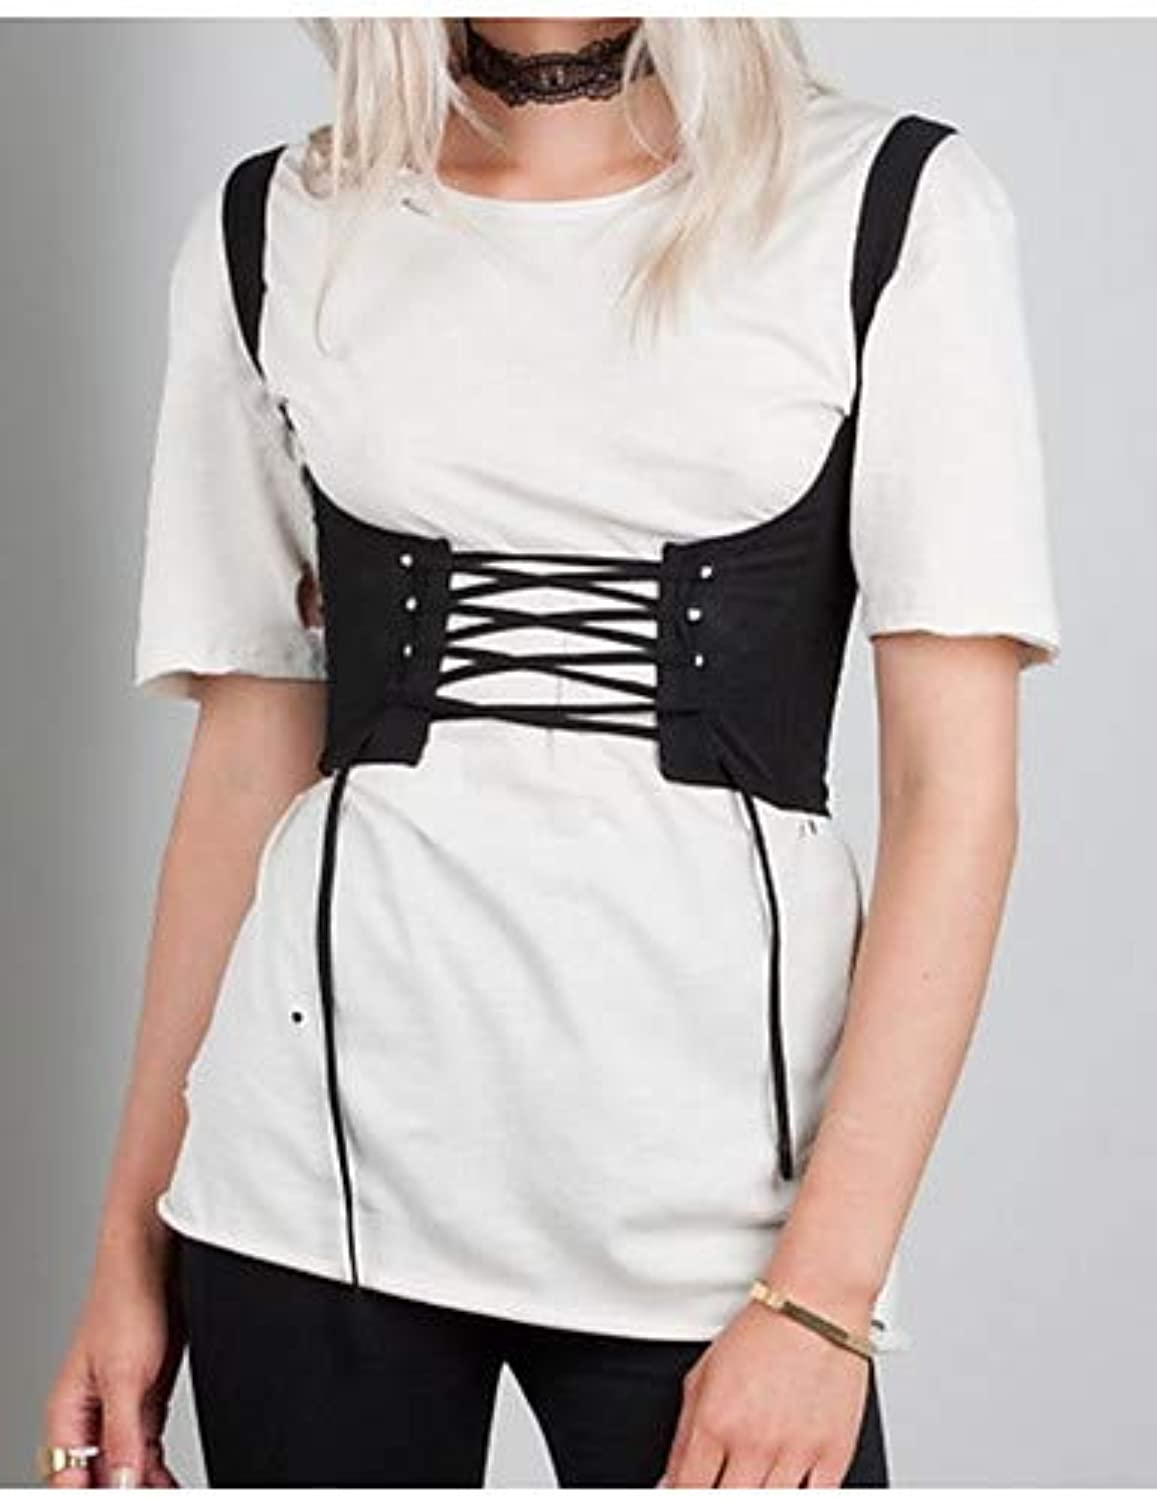 Women's Basic Tank Top  Solid colord Backless CrissCross Lace up